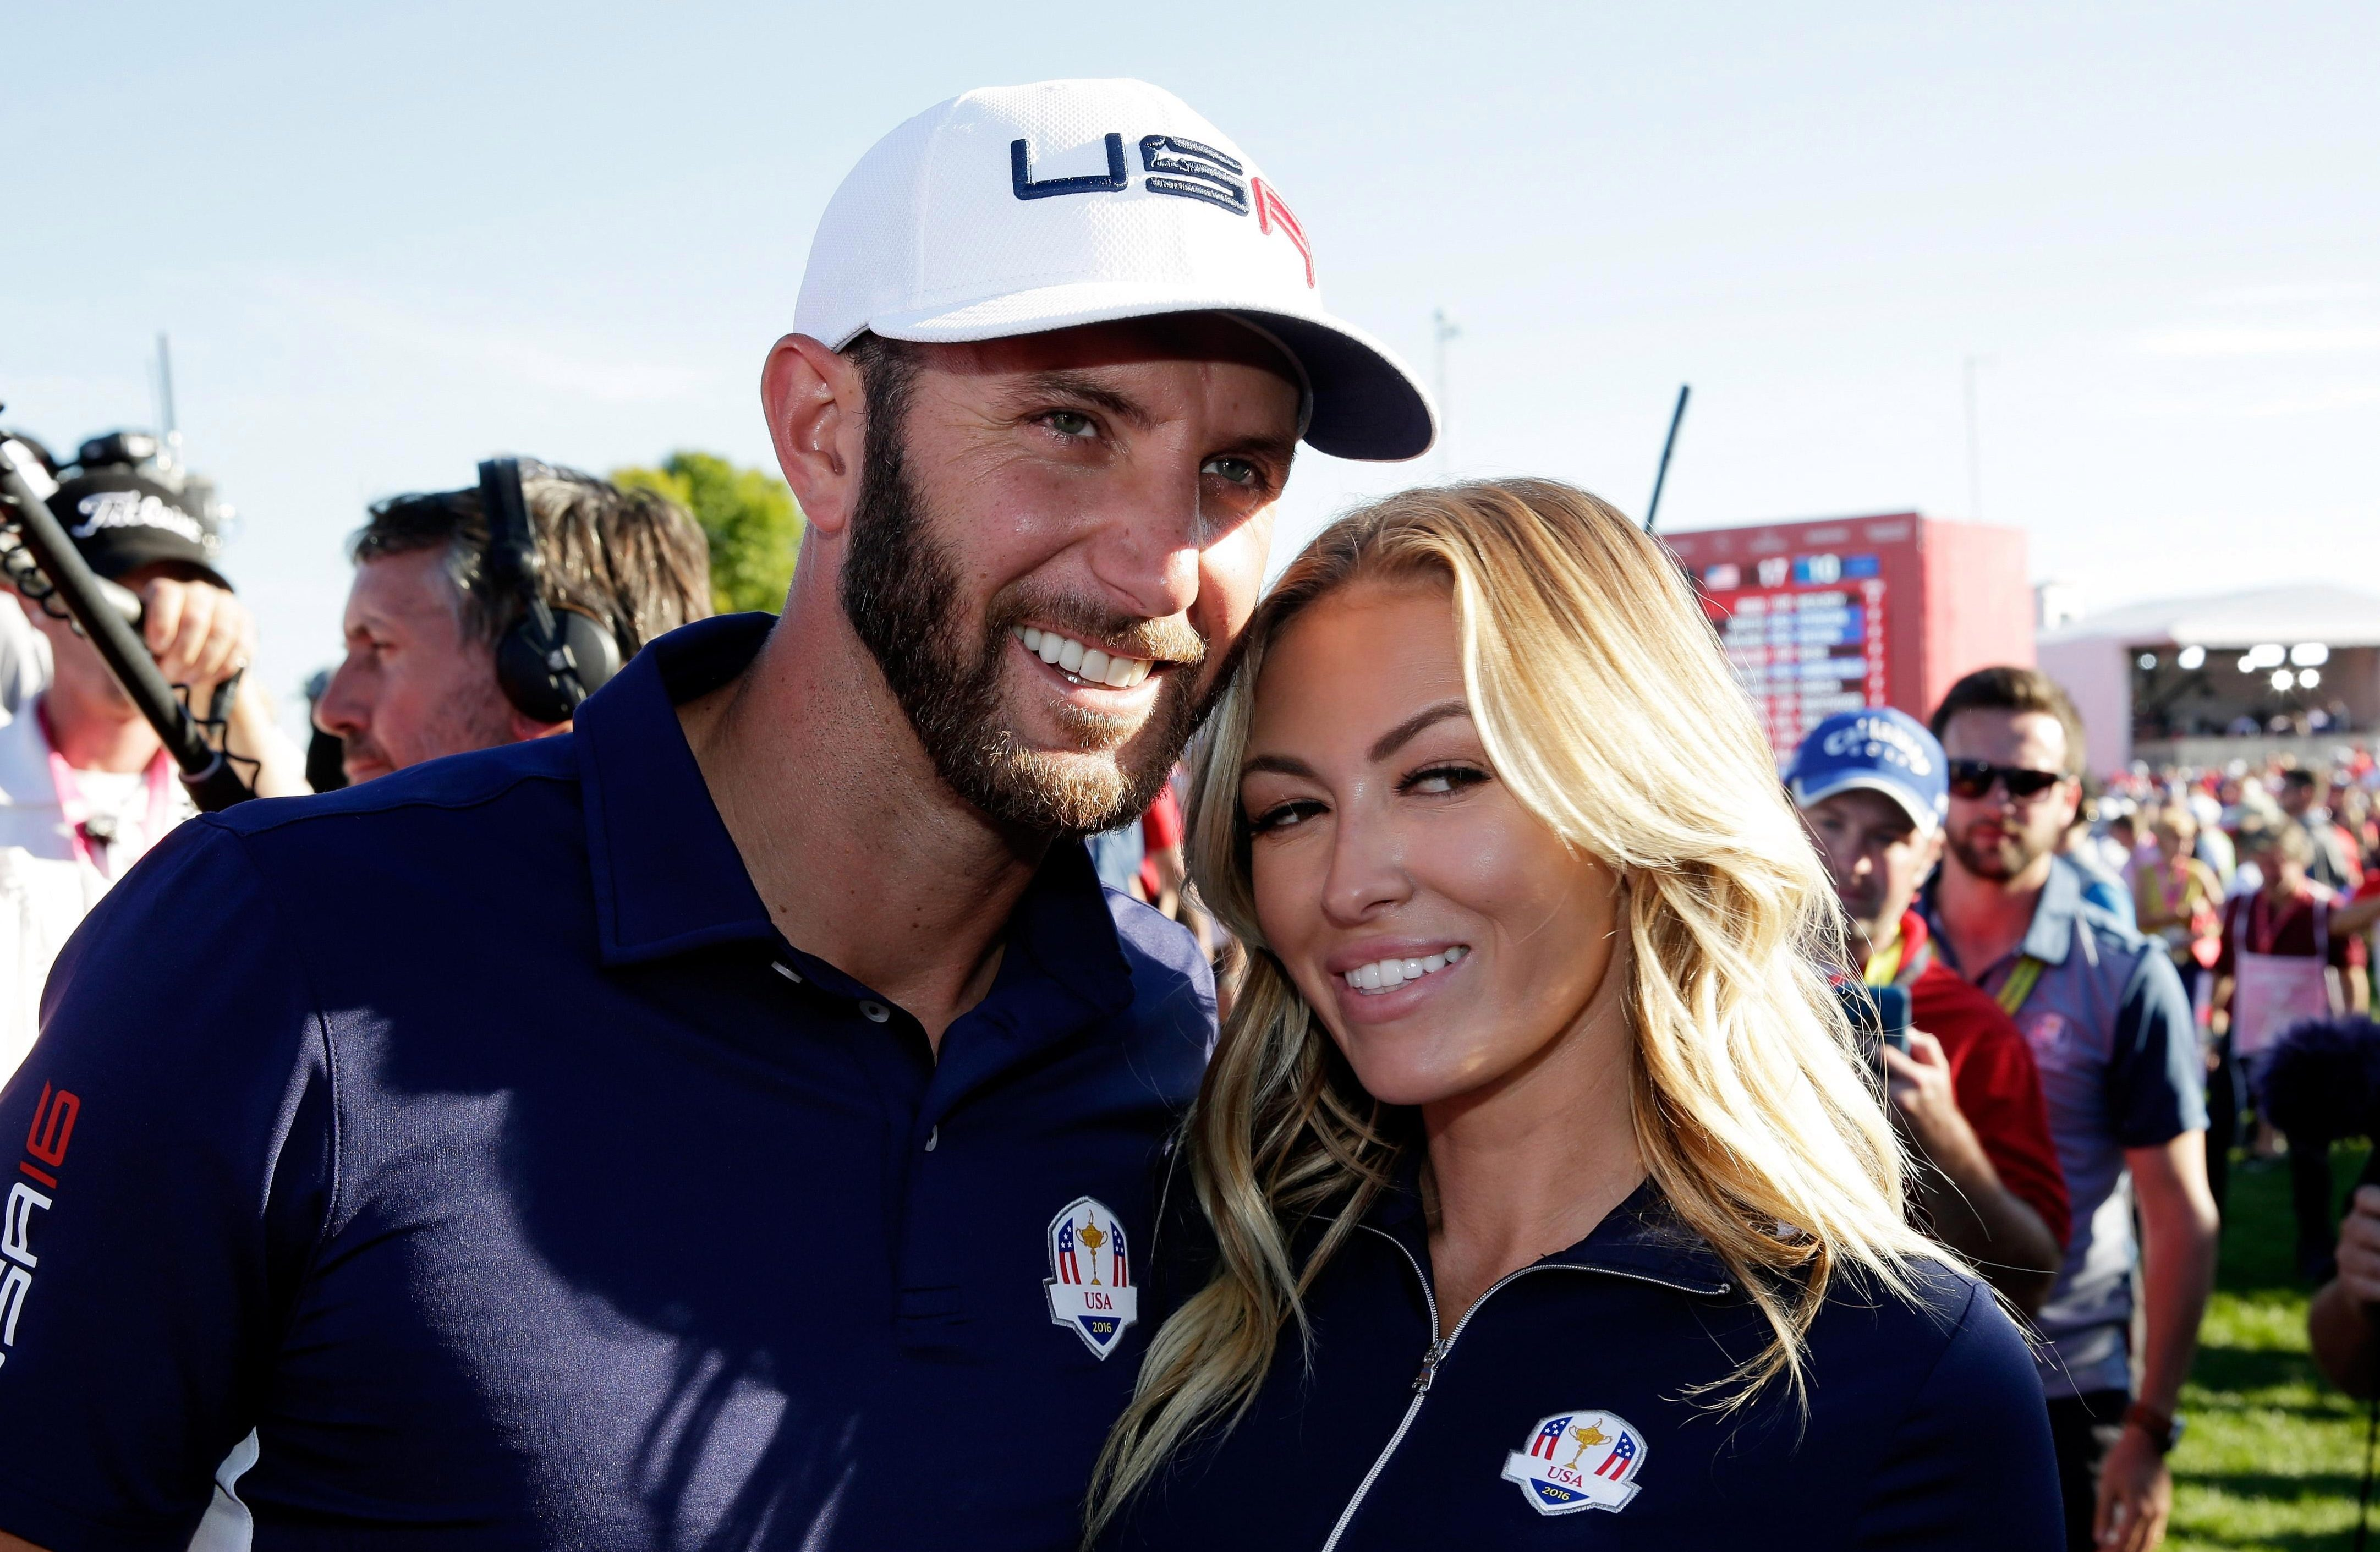 Dustin with Paulina after the 2016 Ryder Cup